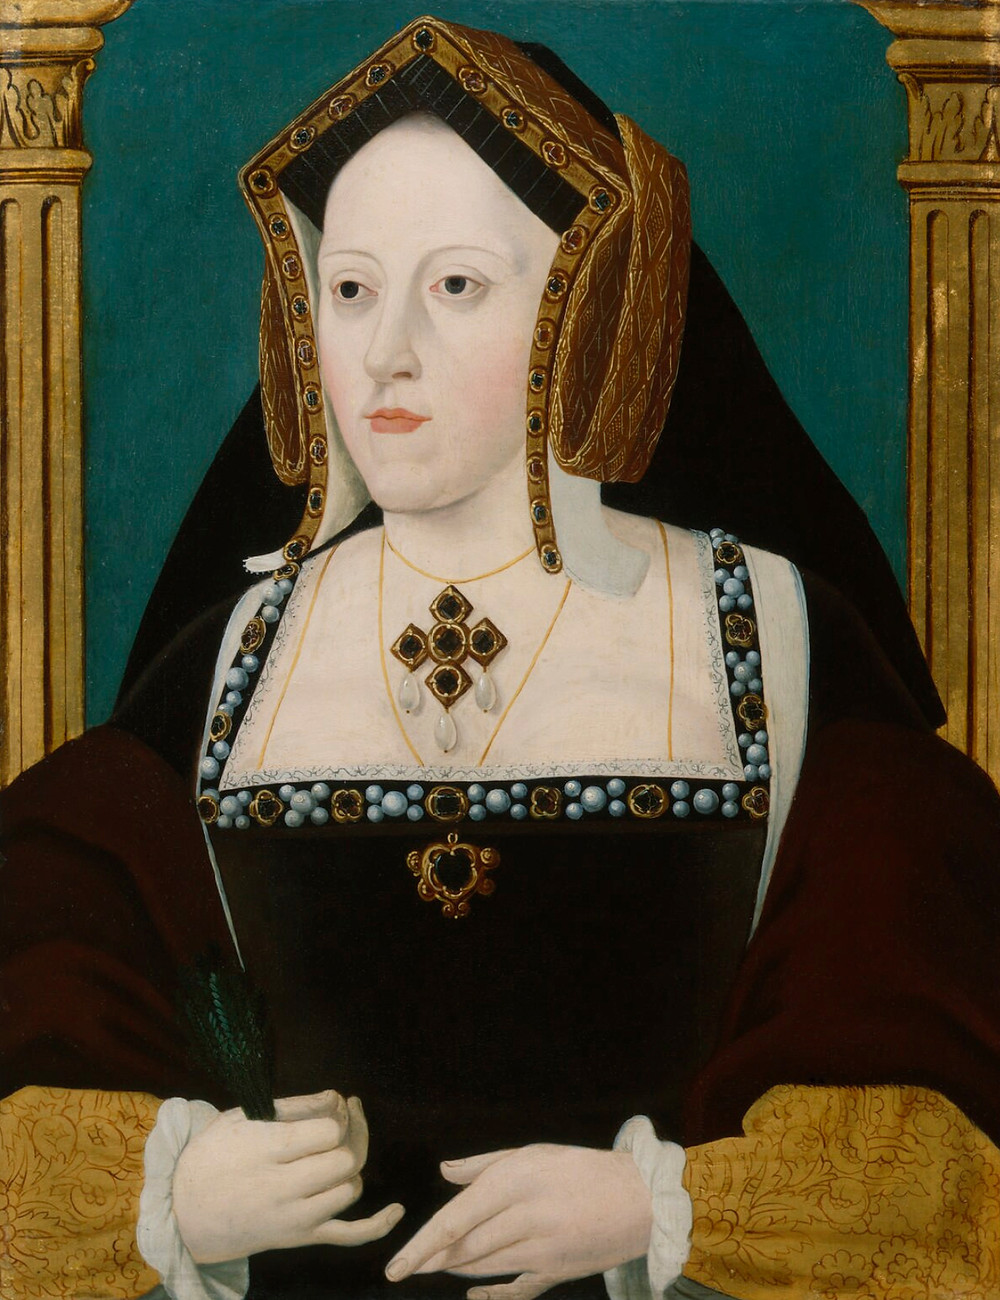 Katharine of Aragon, Queen of England as the first wife of king Henry VIII of England, portrait paintnig